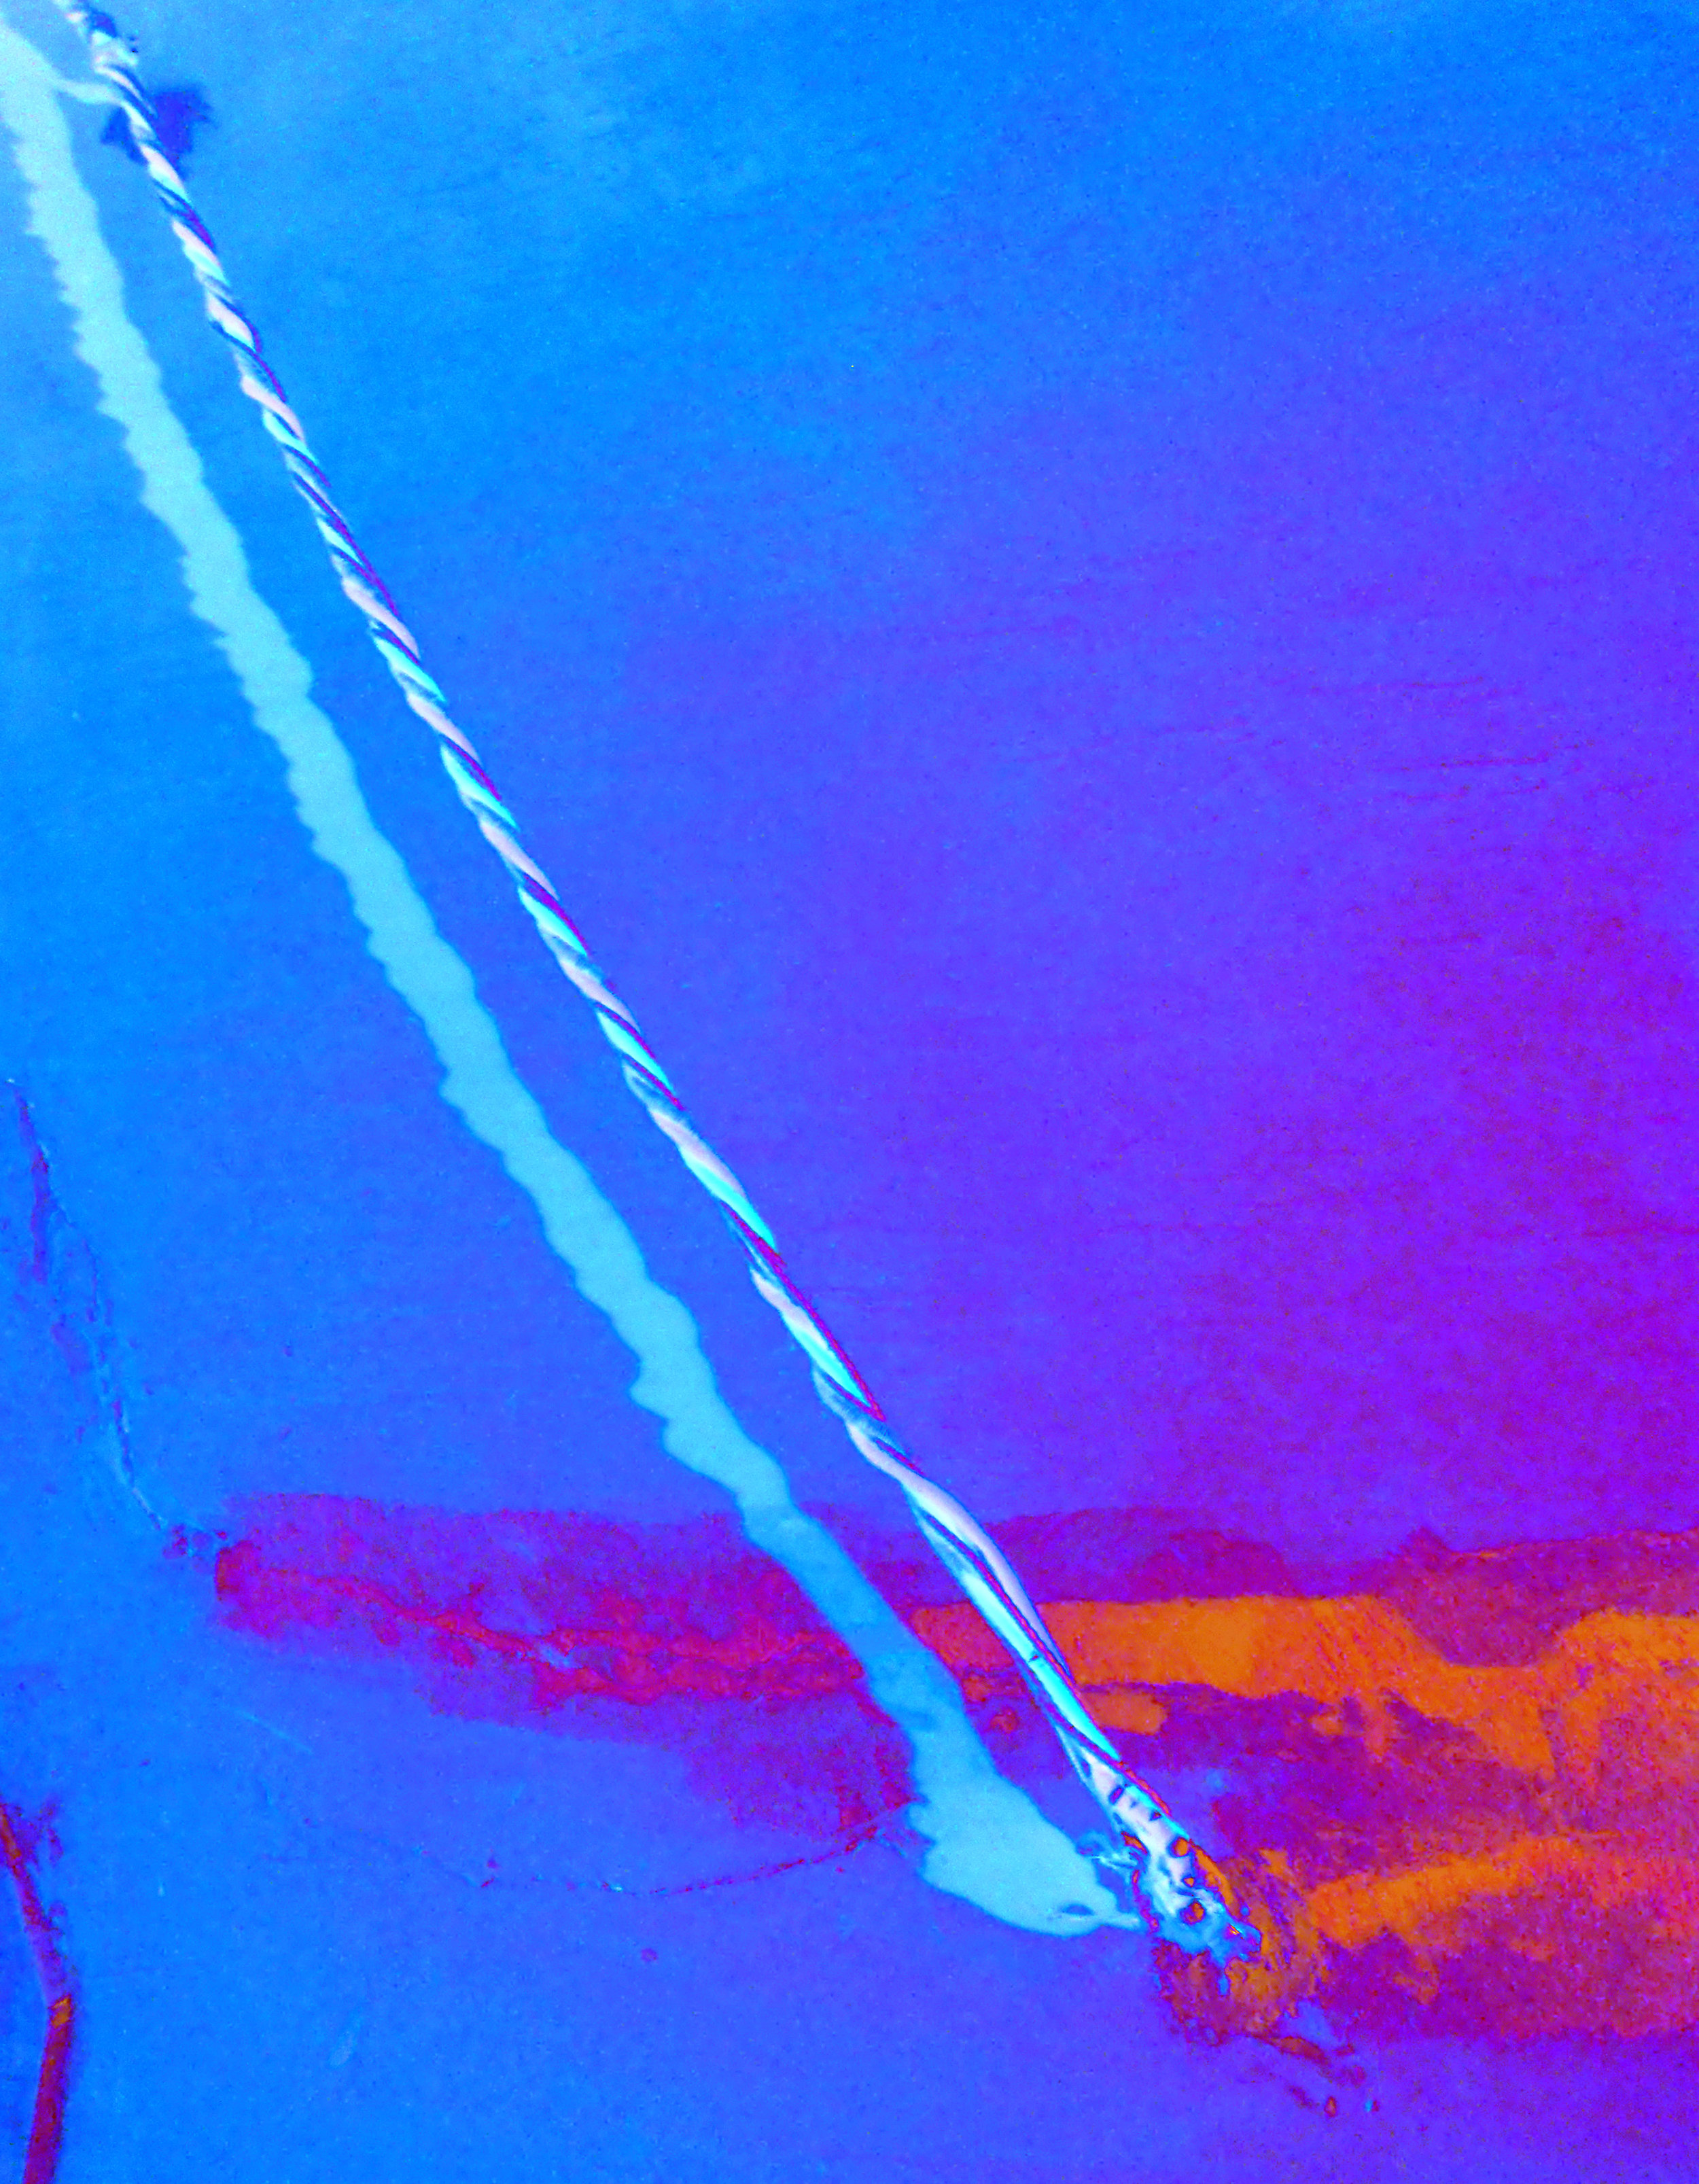 Abstract Blue , 2015, pigmented ink print, framed, 60 x 46,6 cm, Edition 3+1 AP.